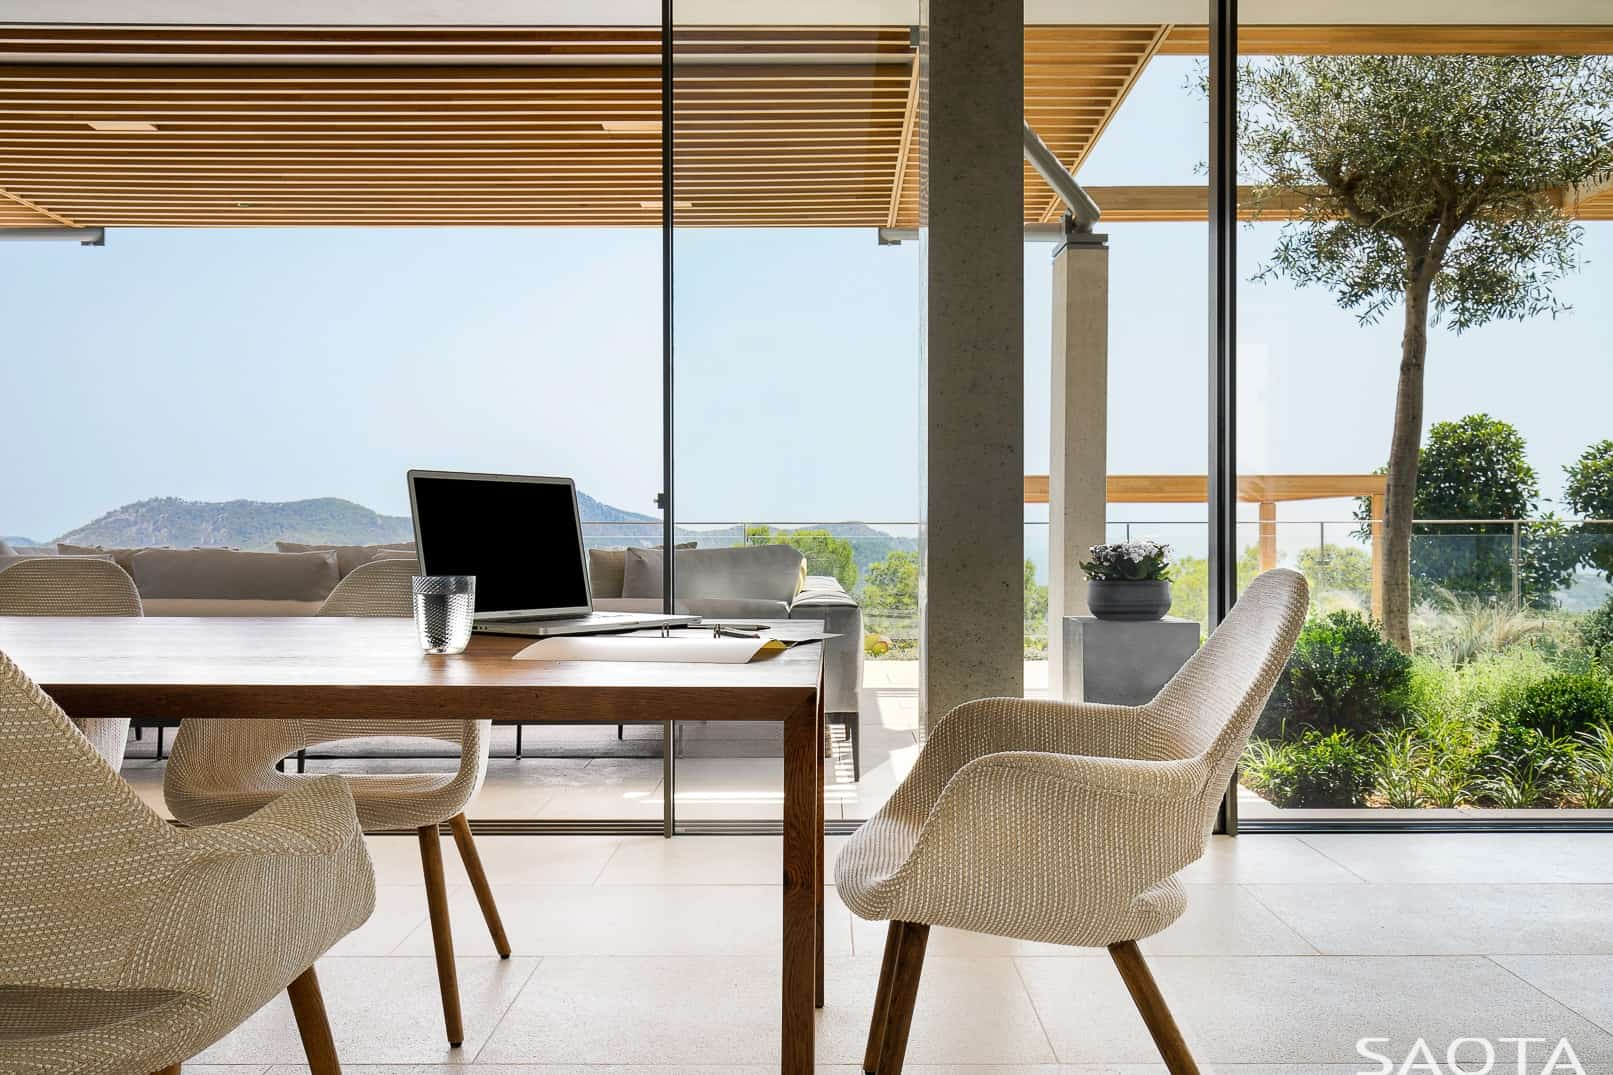 The dining area overlooks the beautiful view of Port d'Andratx. Photo by Adam Letch / Architecture by Rys Architects / Interior design by ARRCC and Rys Architects / Lighting design by Lux Populi / Landscaping by Cracknell